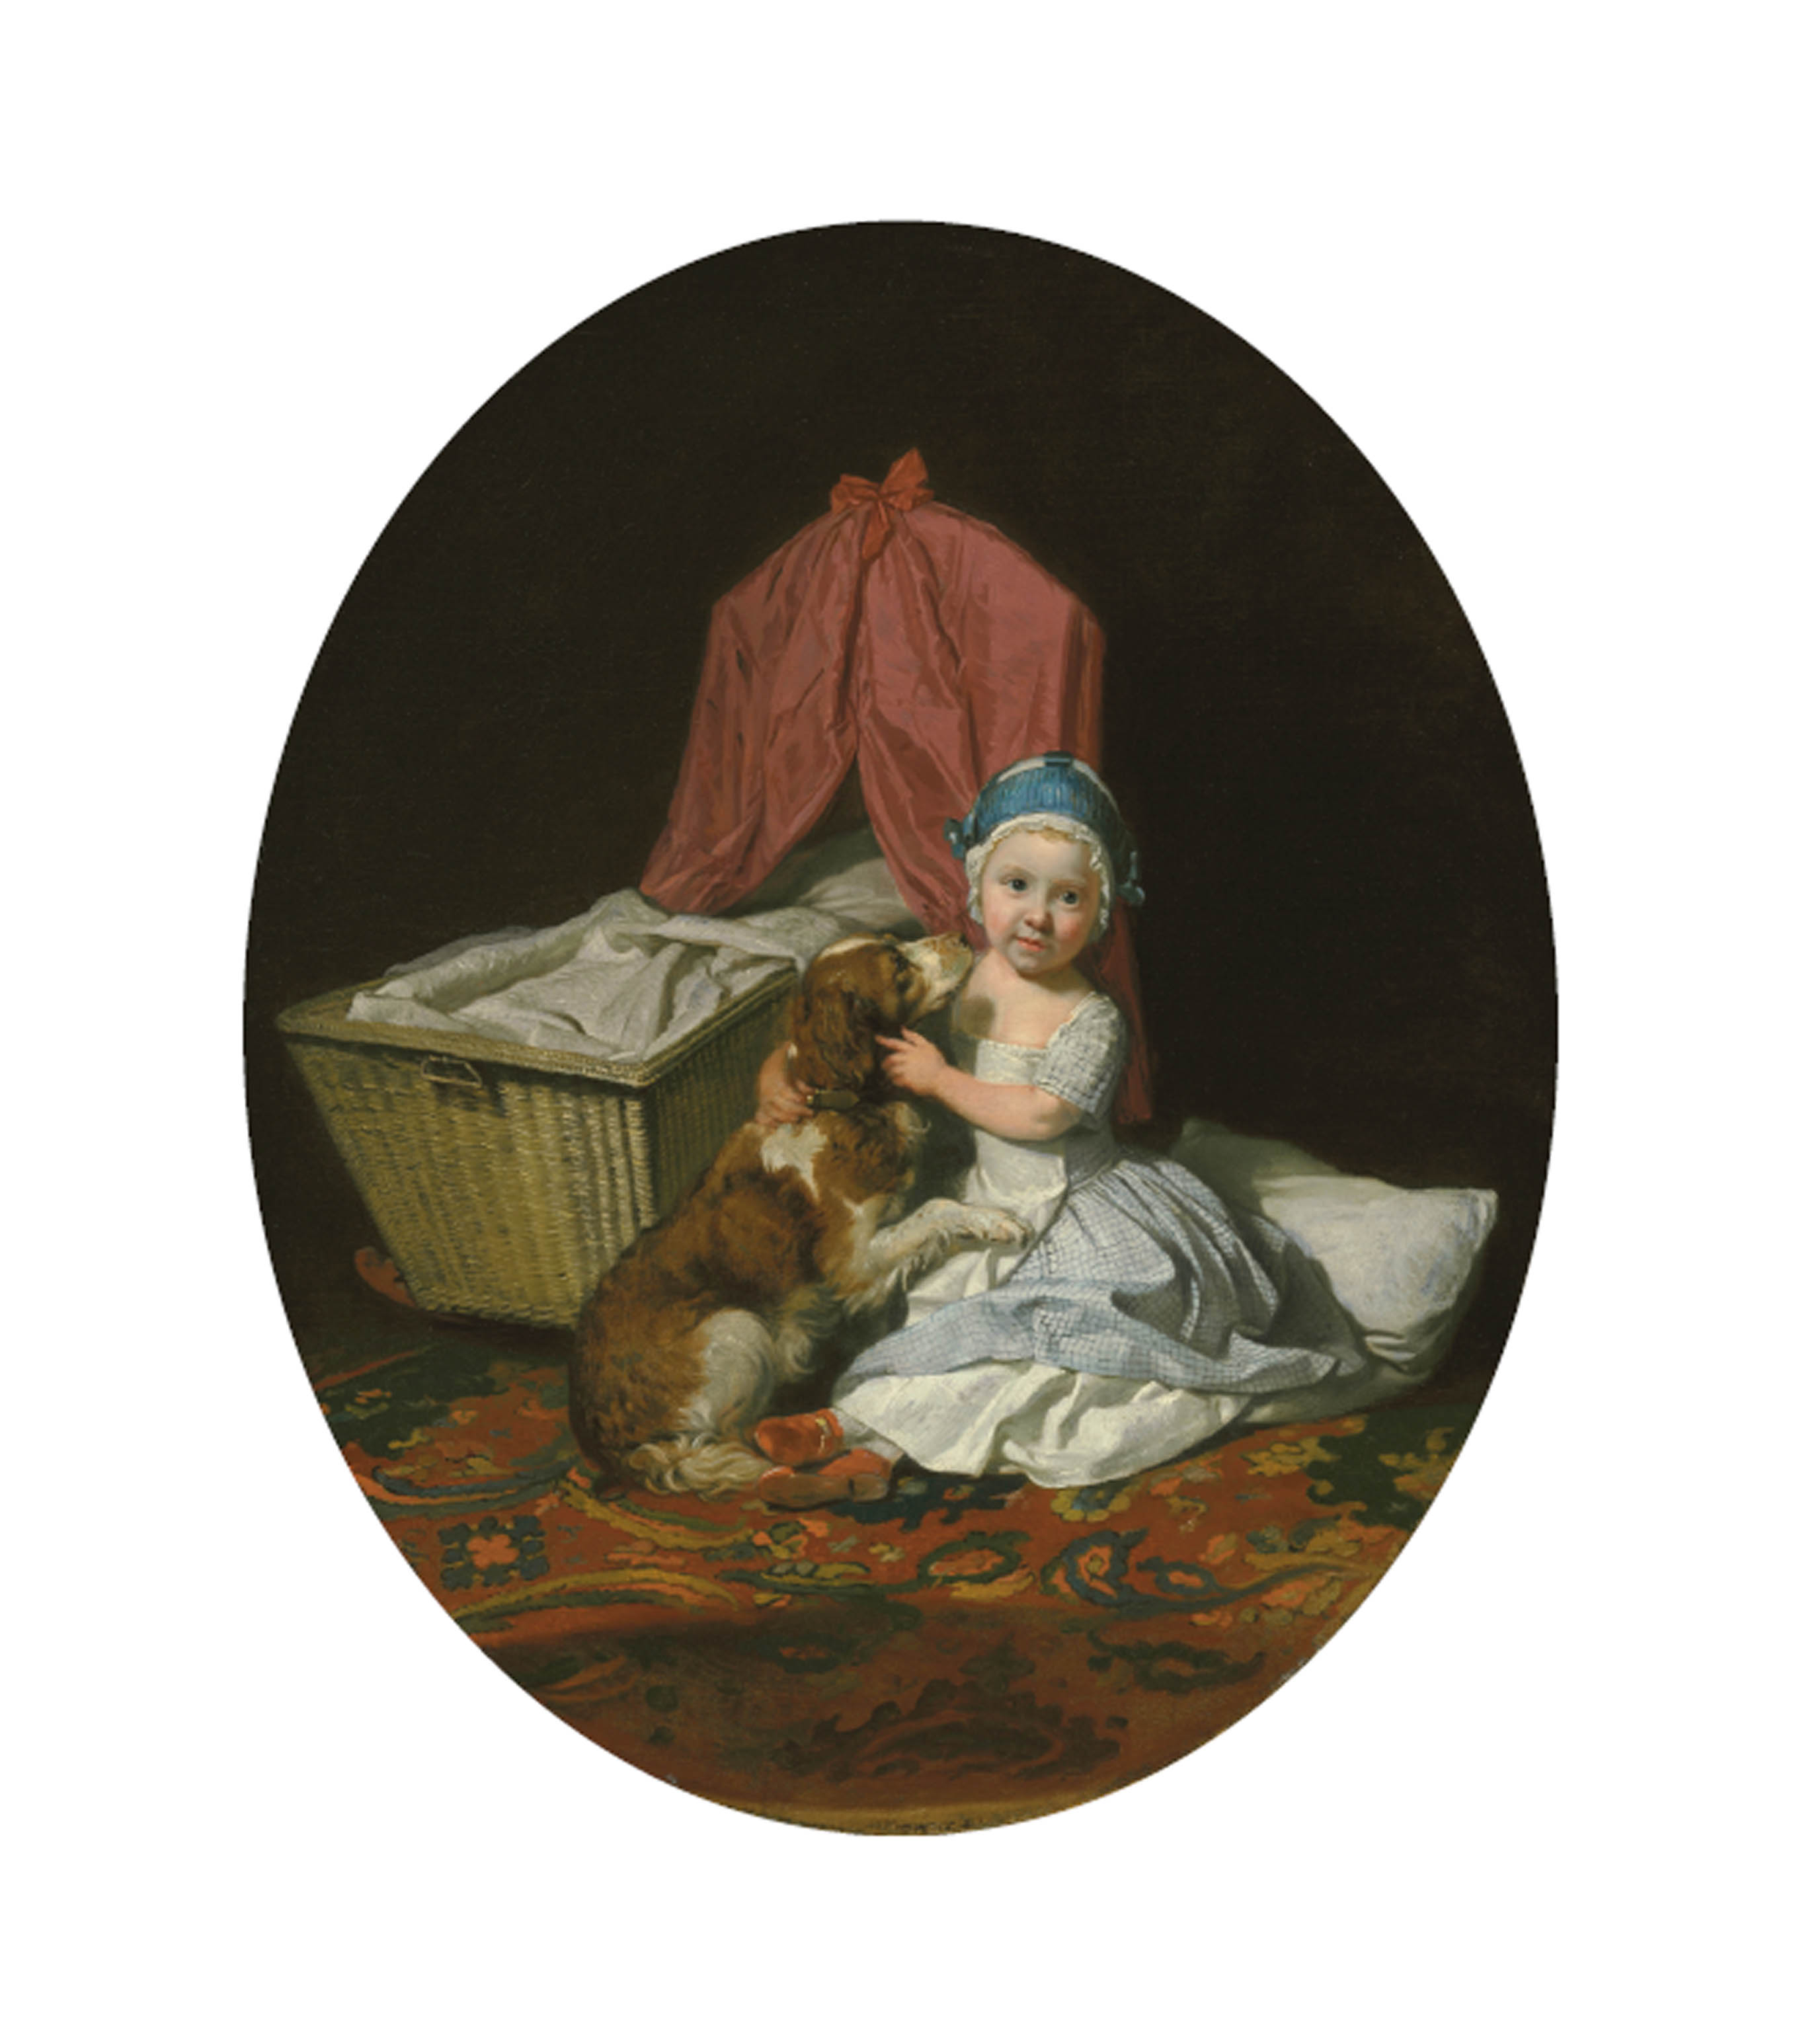 Portrait of Hester Maria Thrale, 'Queeney' (1764-1857), as a child, full-length, in a blue checked dress and white apron, and a blue pudding hat, seated on a turkey rug, with a pet spaniel, Belle, by a cradle